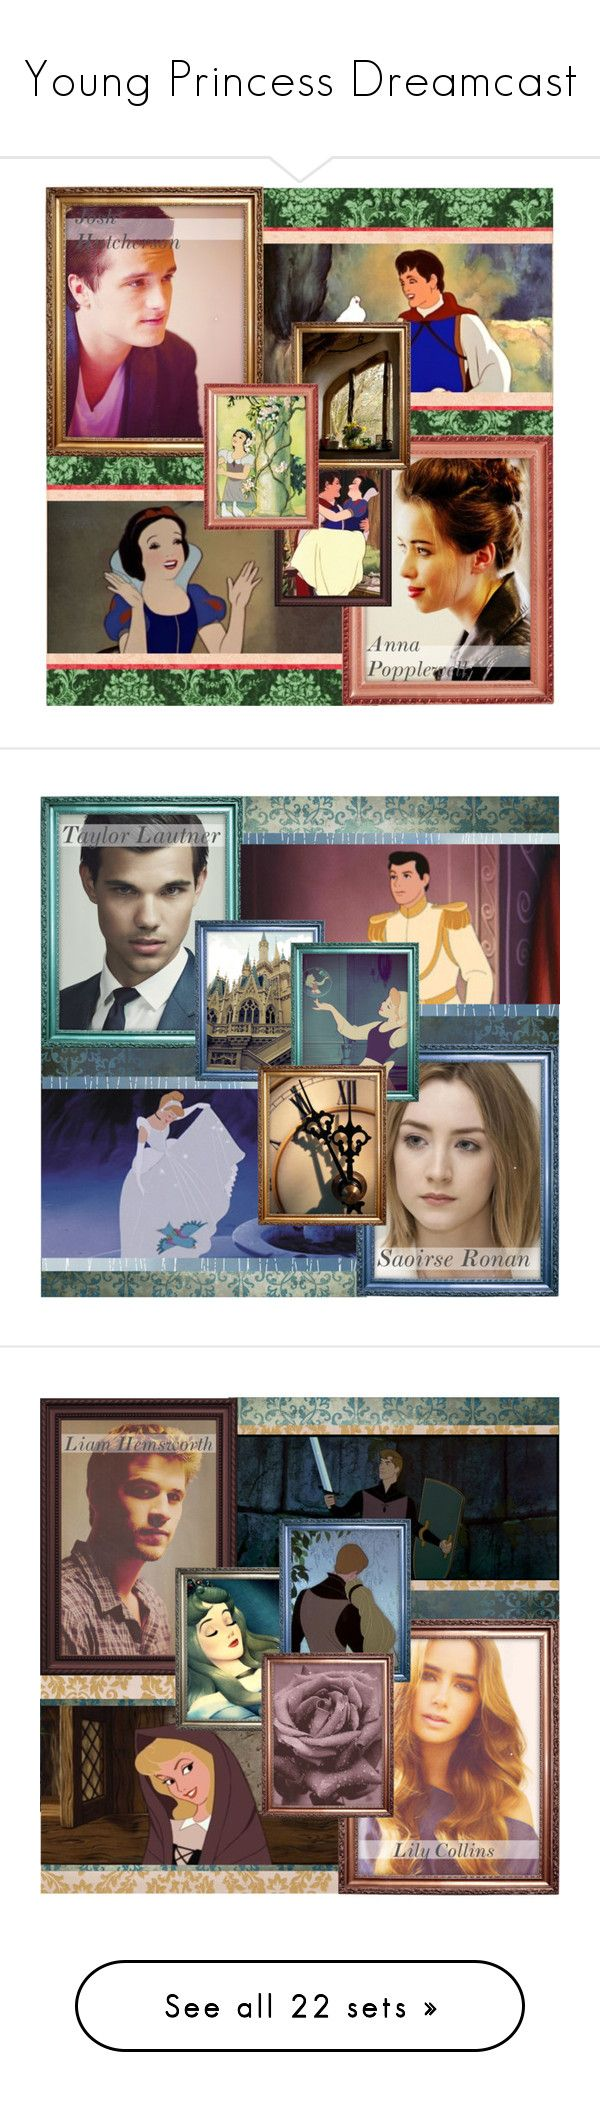 """Young Princess Dreamcast"" by shaeli ❤ liked on Polyvore featuring art, ferdinand, dreamcast, snow white, josh hutcherson, anna popplewell, saoirse ronan, taylor lautner, cinderella and prince charming"